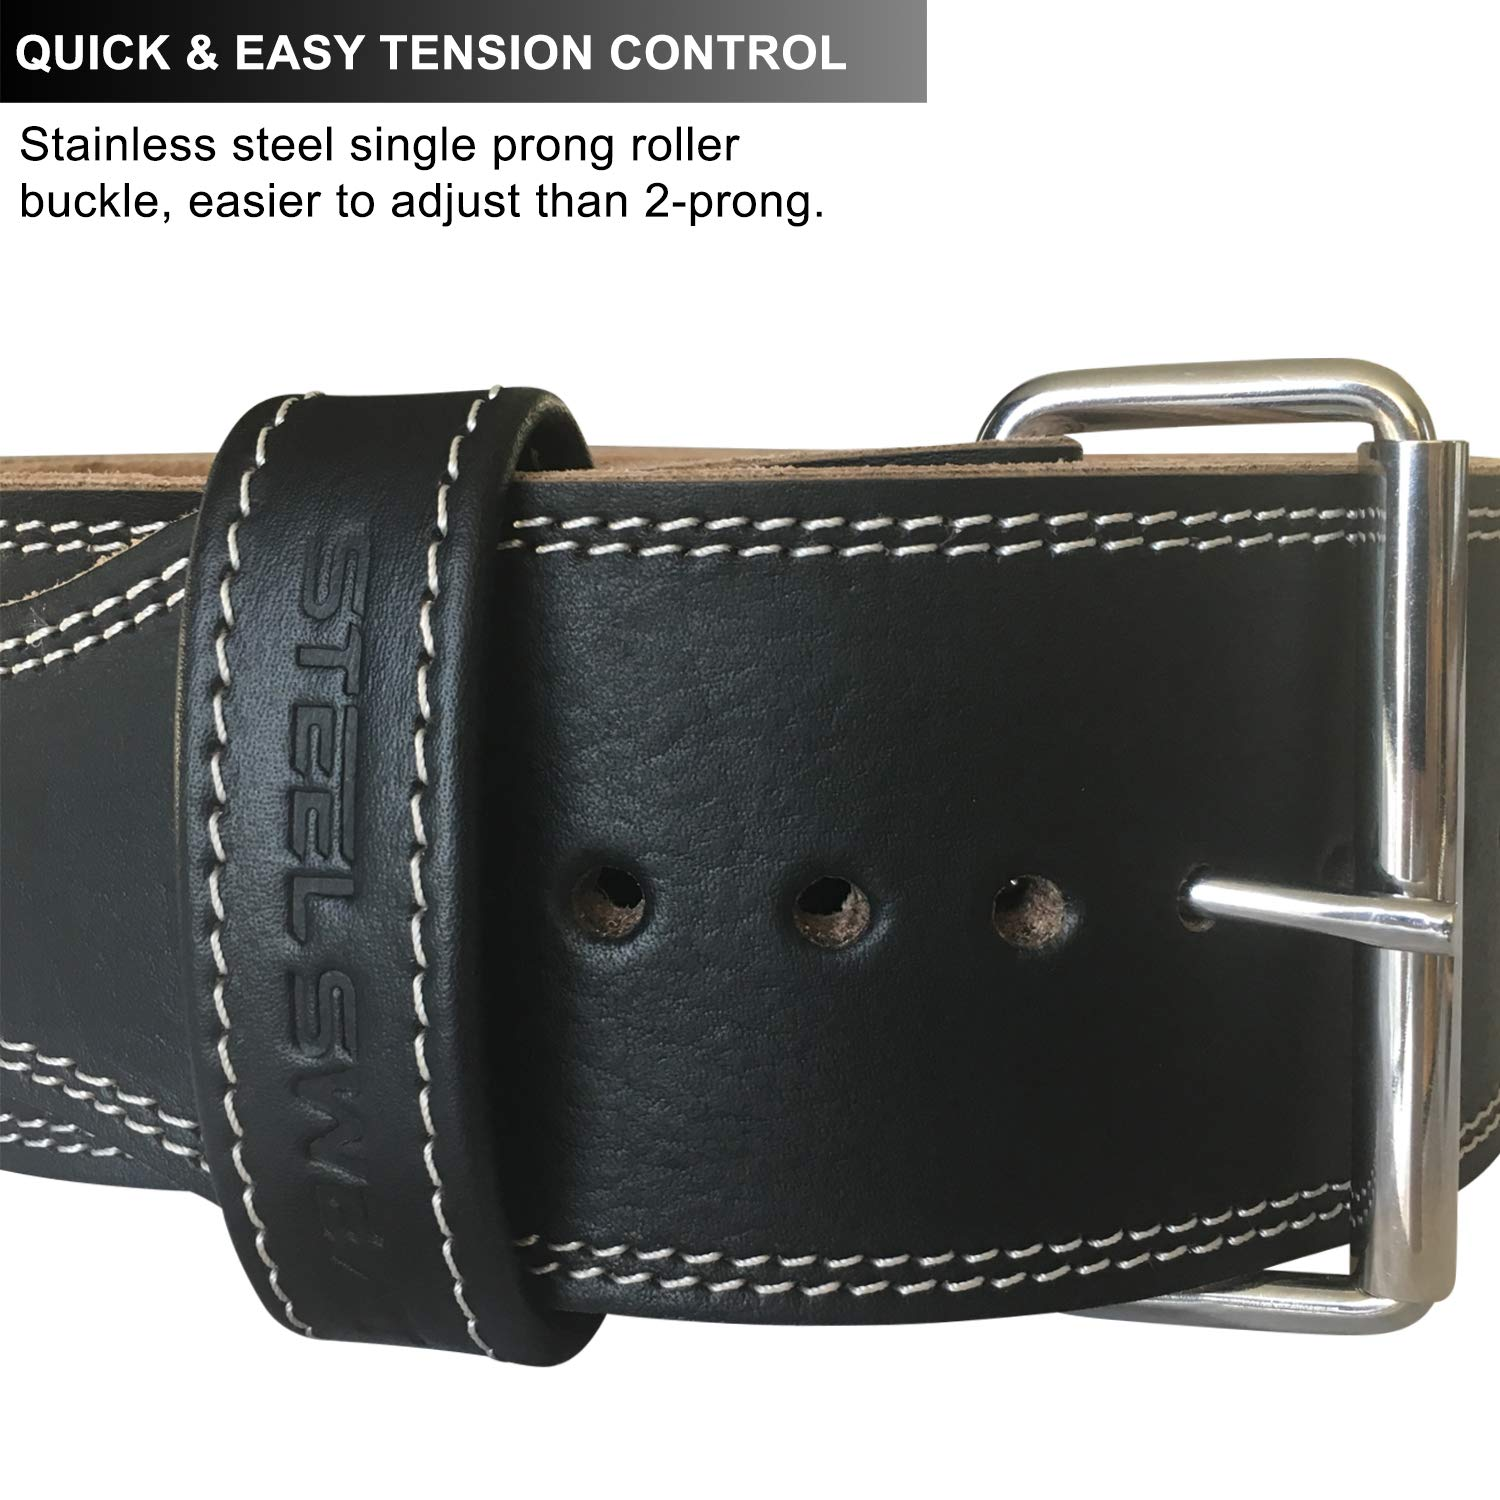 Steel Sweat Weight Lifting Belt - 4 Inches Wide by 10mm - Single Prong Powerlifting Belt That's Heavy Duty - Genuine Cowhide Leather - Medium Texus by Steel Sweat (Image #5)